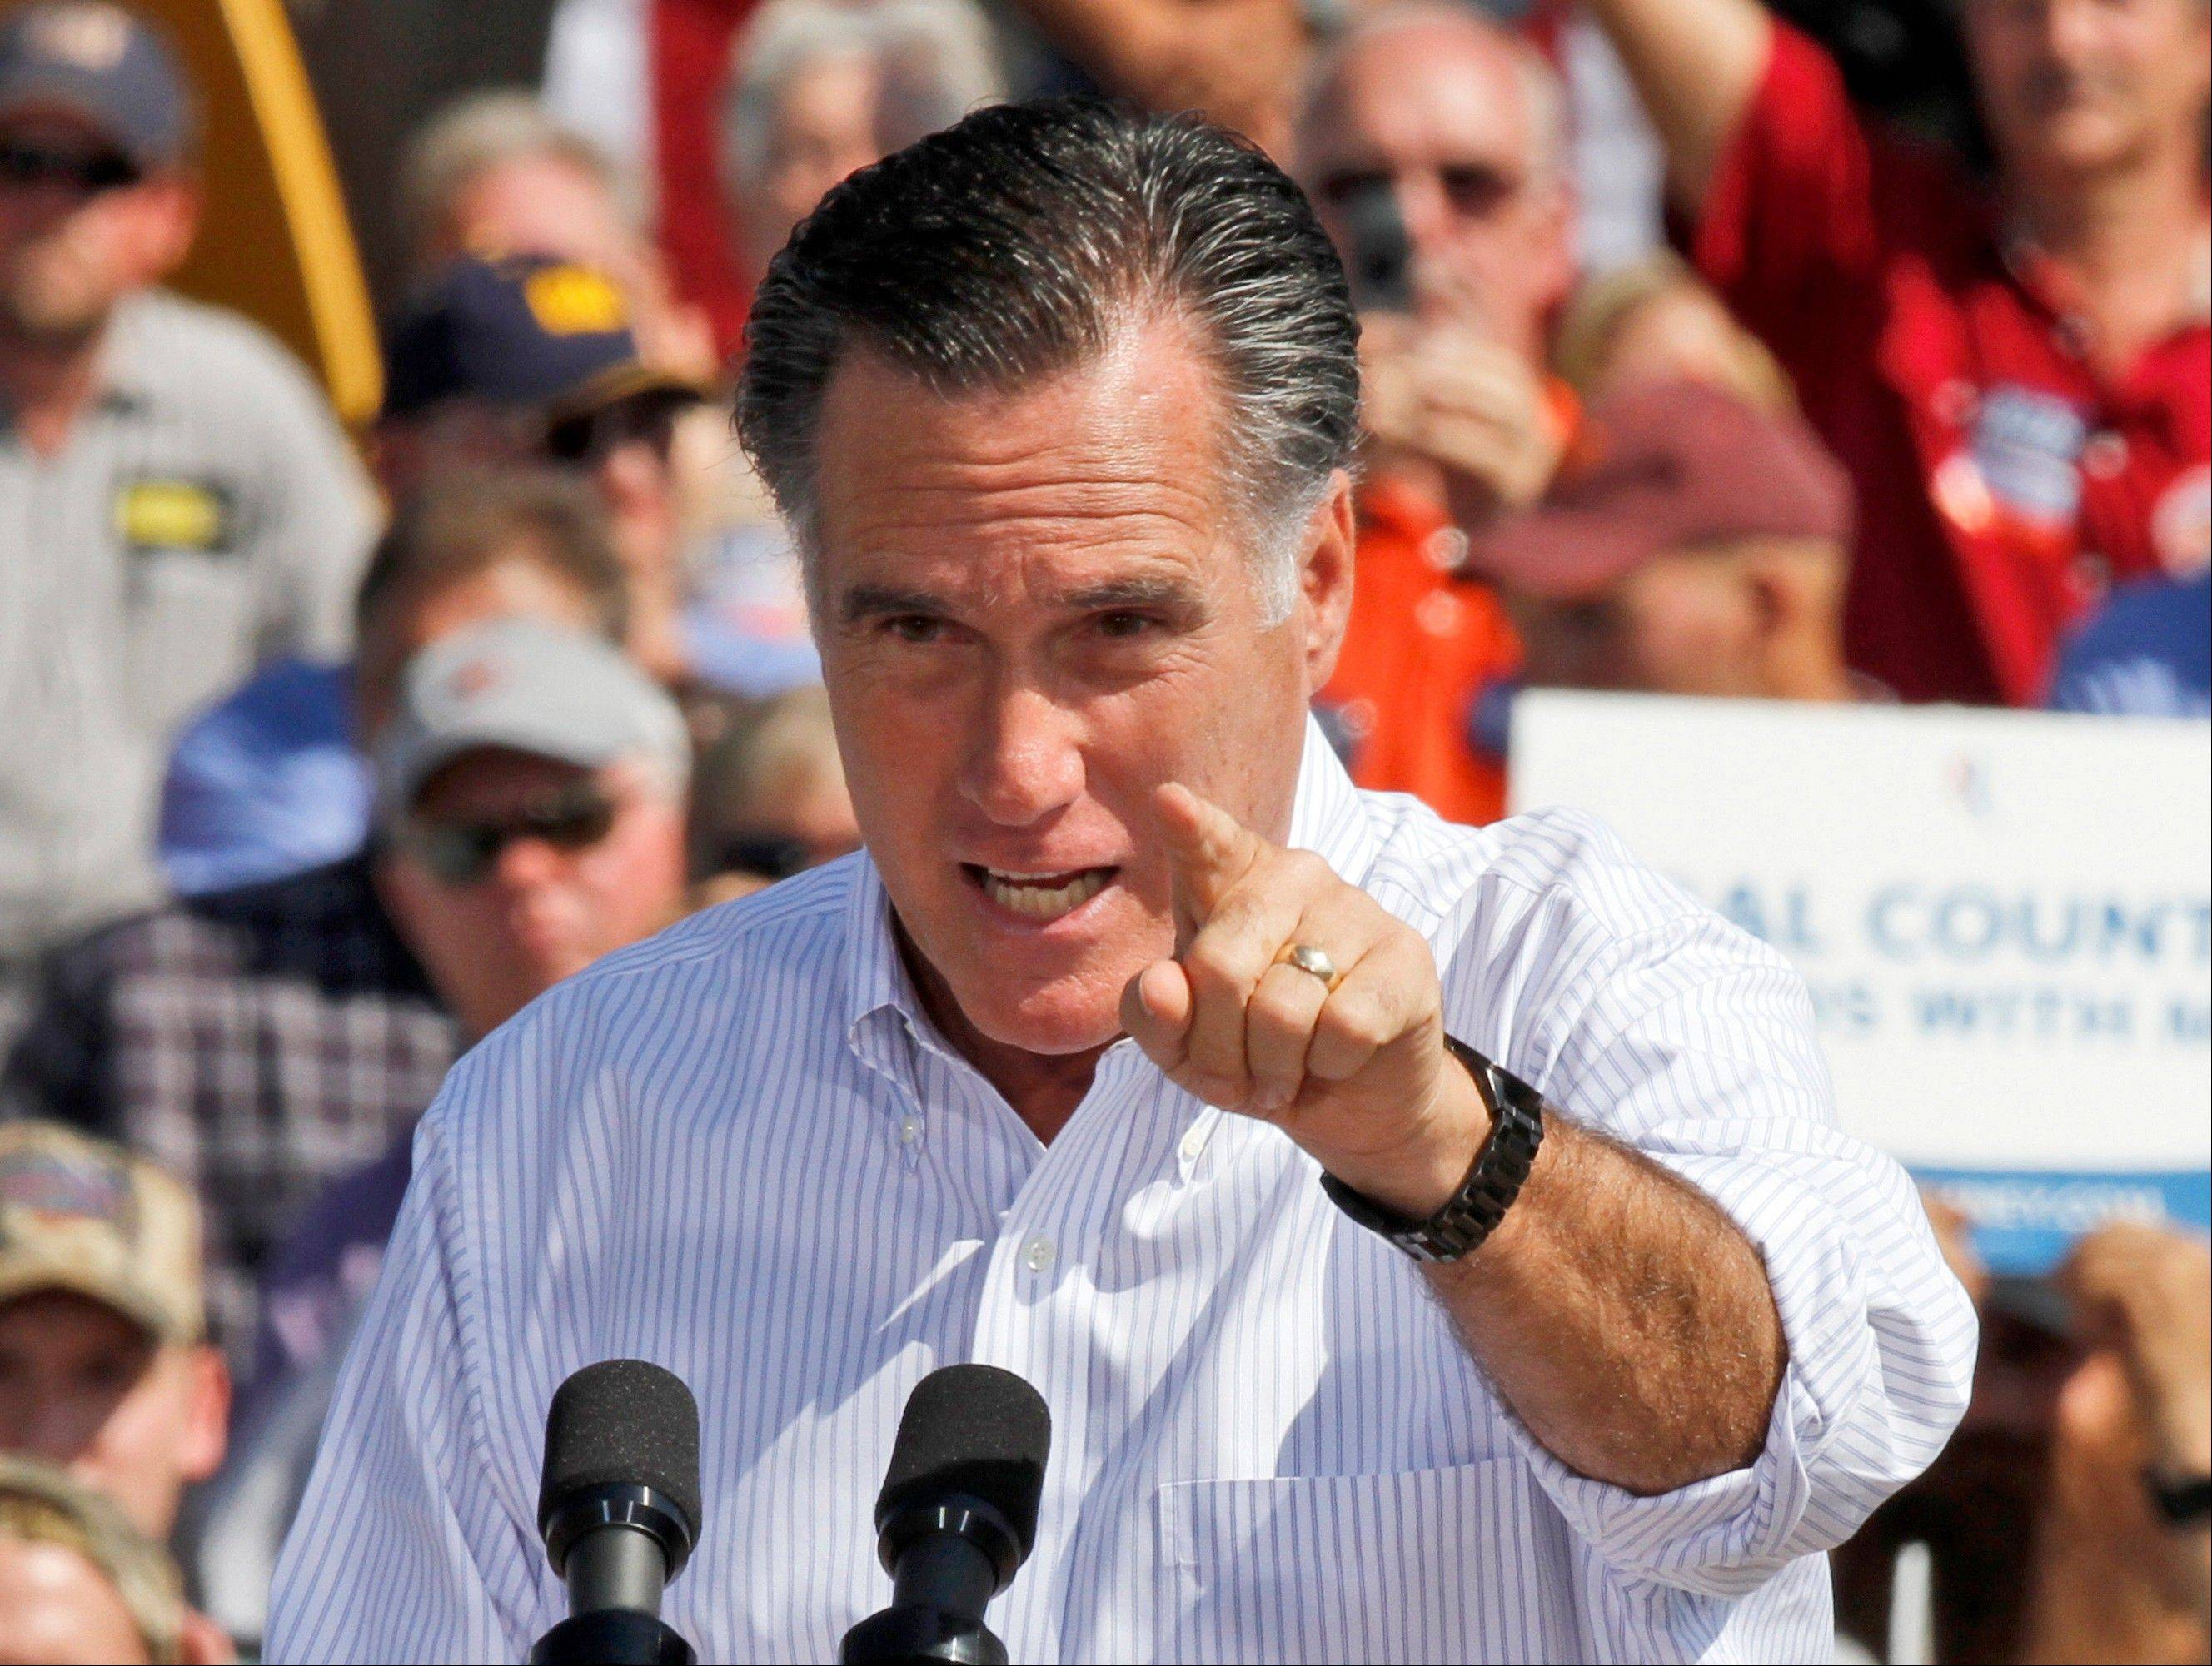 Republican presidential candidate and former Massachusetts Gov. Mitt Romney gestures Friday during a rally in Abingdon, Va.